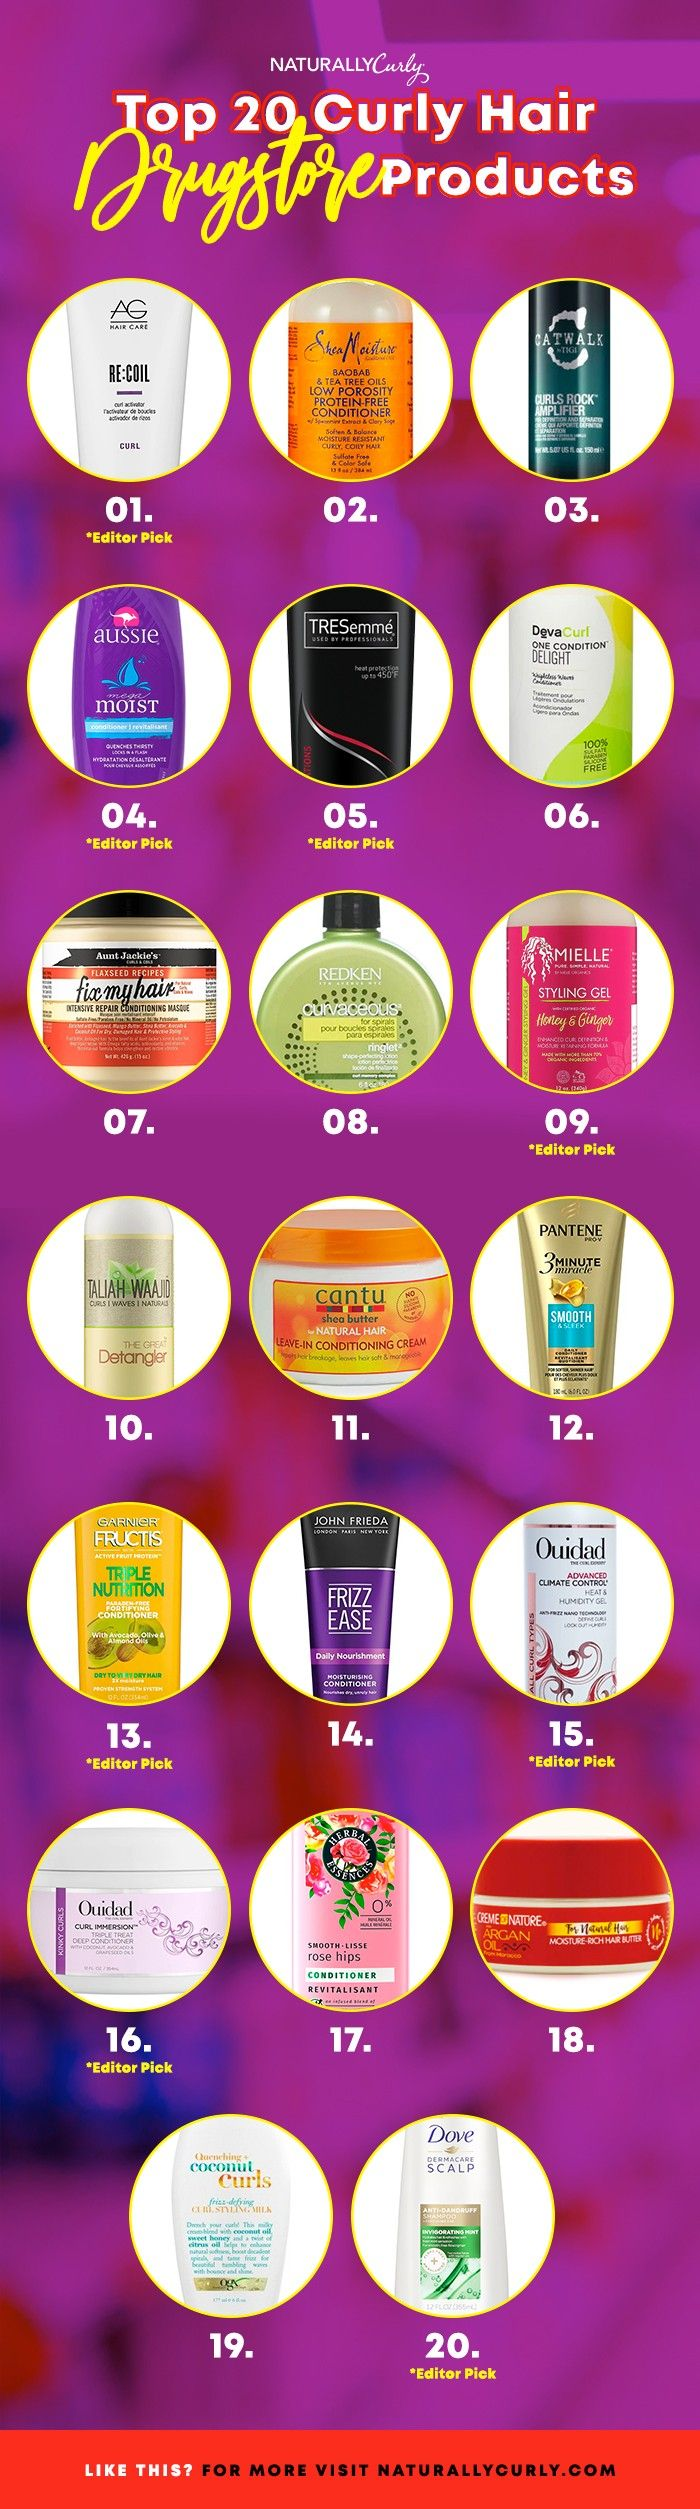 The 20 Best Curly Hair Drugstore Products (With images ...